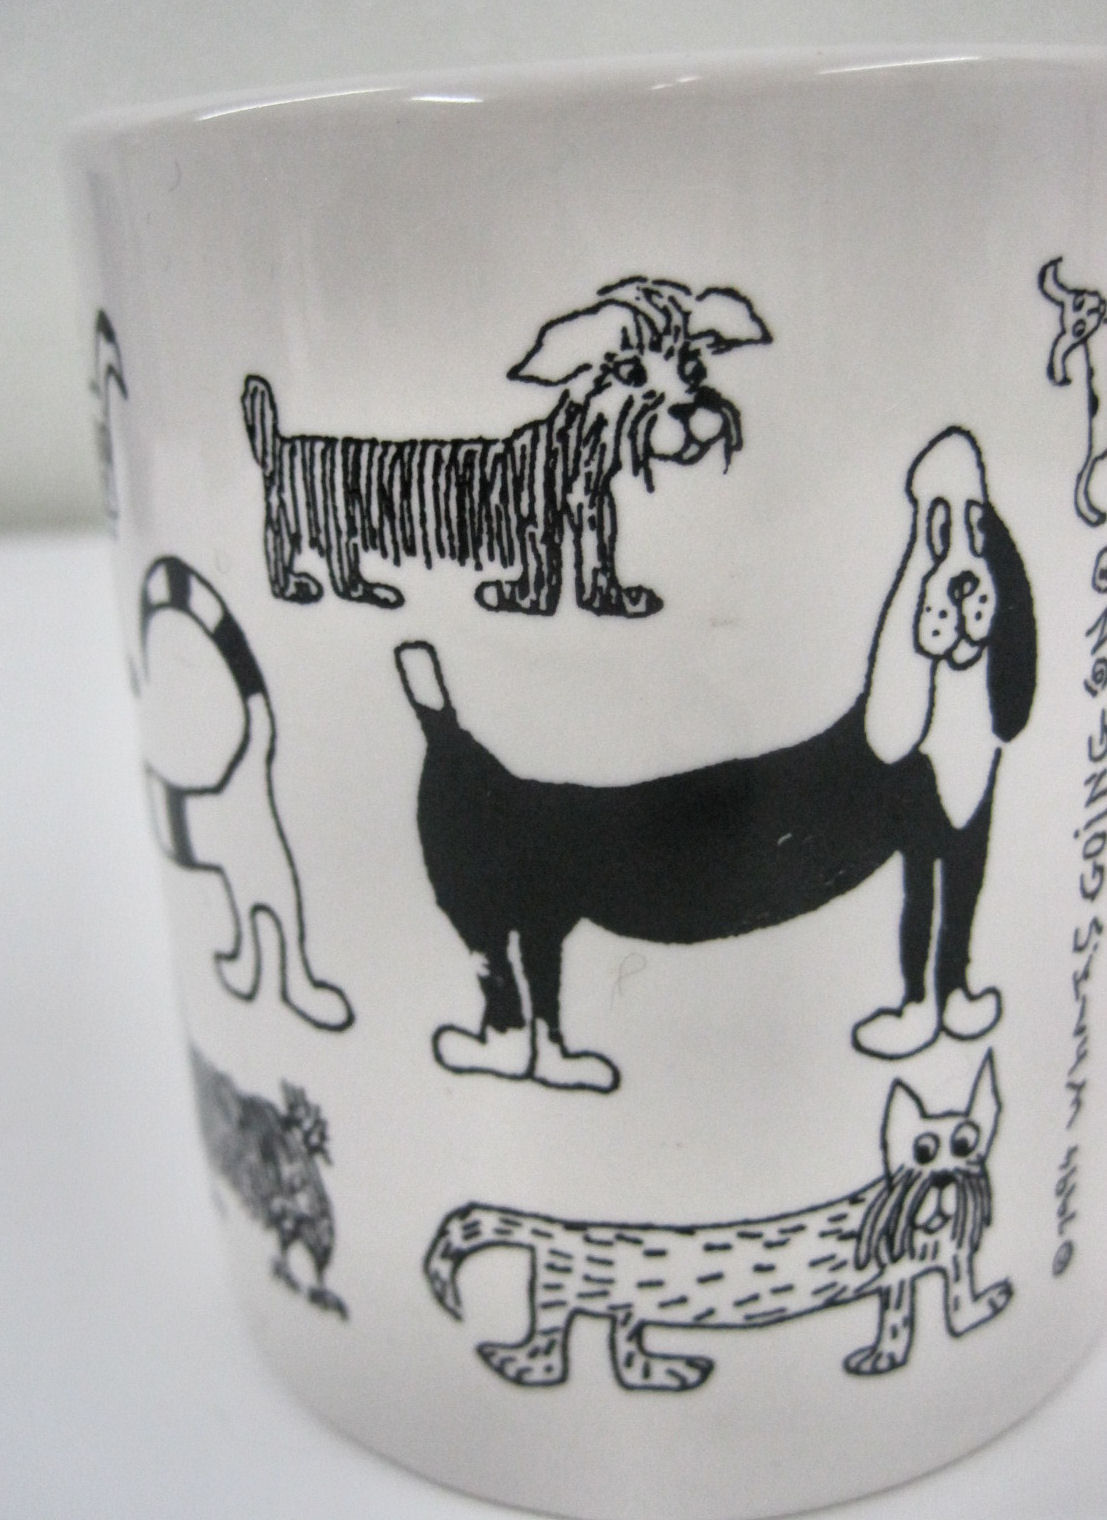 Dog Lovers Black White Coffee Cup Whats Going On 1994 Cup Mug Puppy Pooch Pups